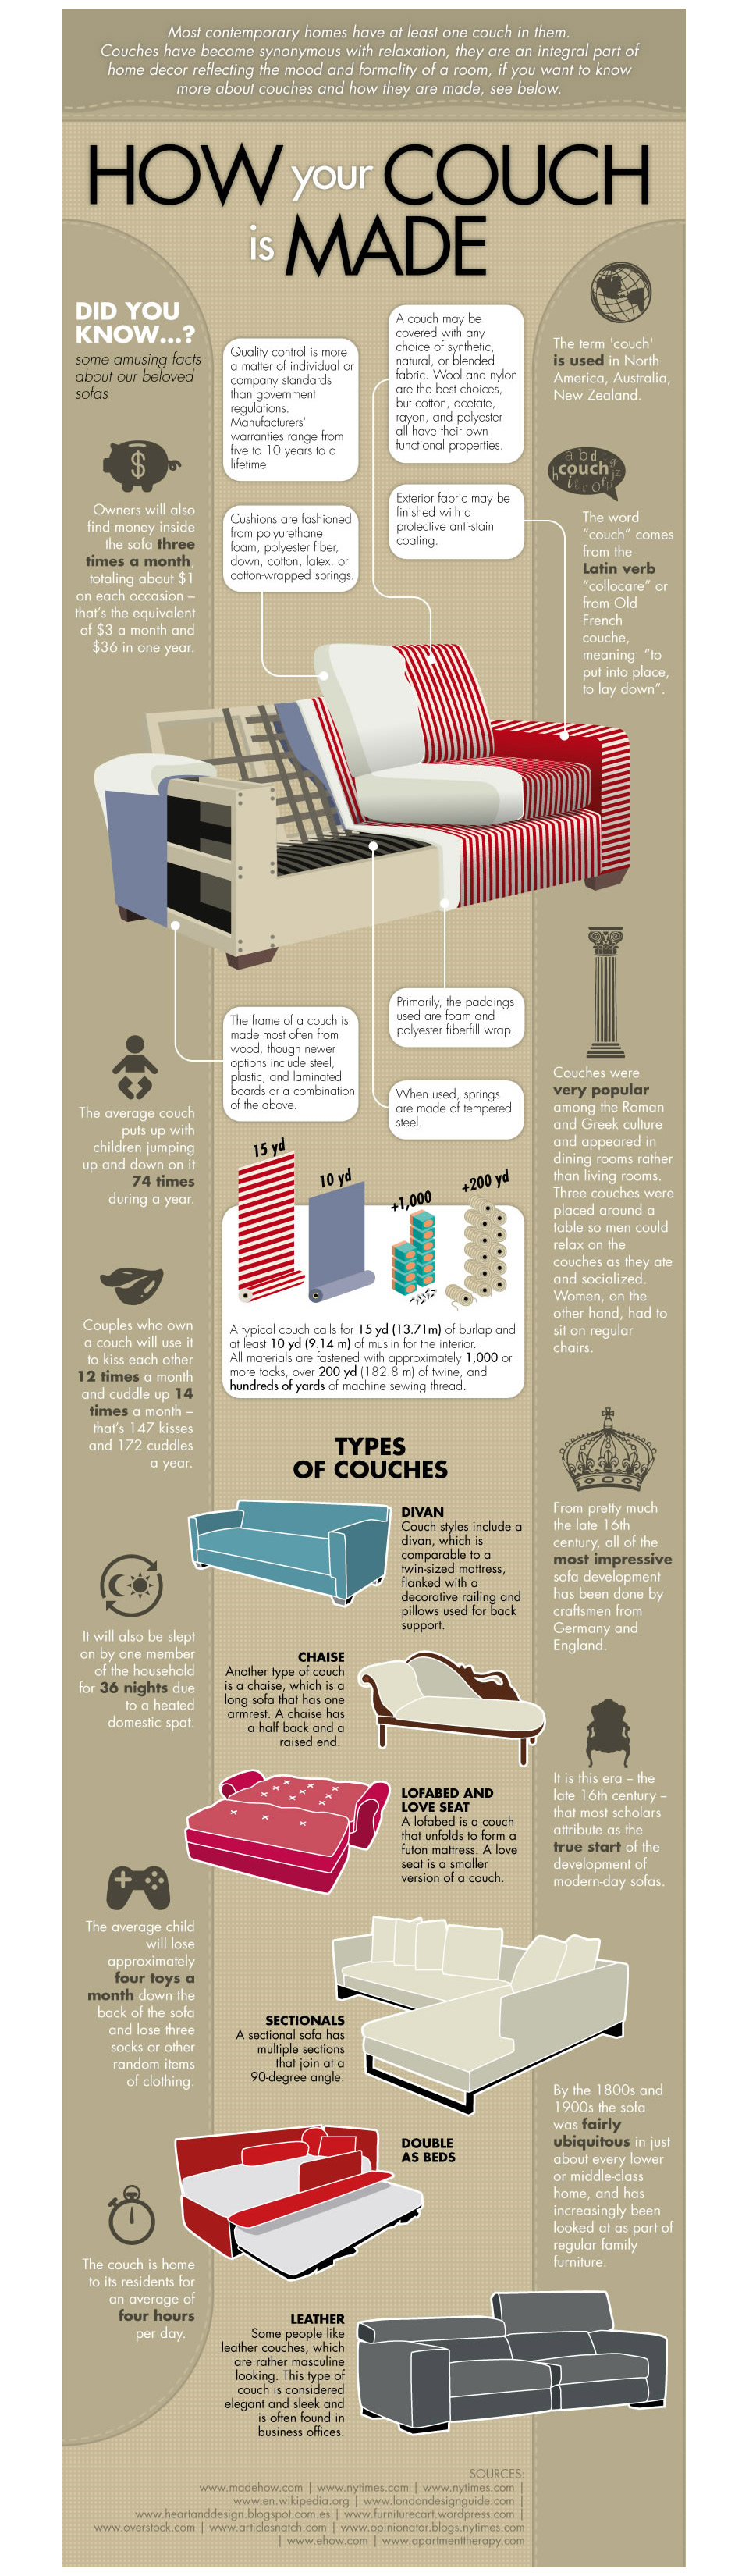 How Your Couch is Made Infographic